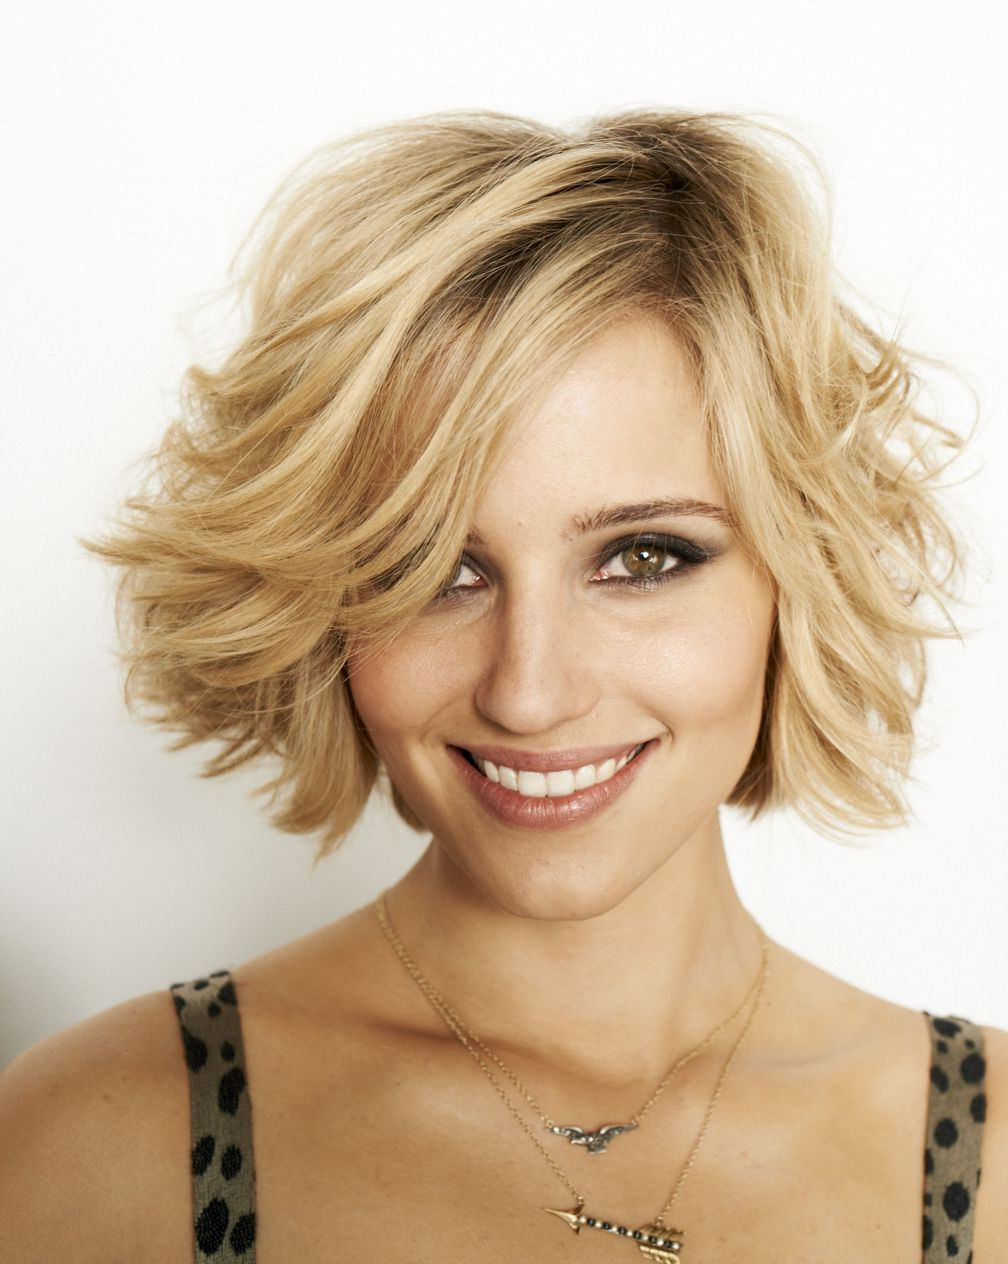 Short Hairstyles For Summer 2014 – Fashionsy In Short Hairstyles With Flicks (Gallery 4 of 20)